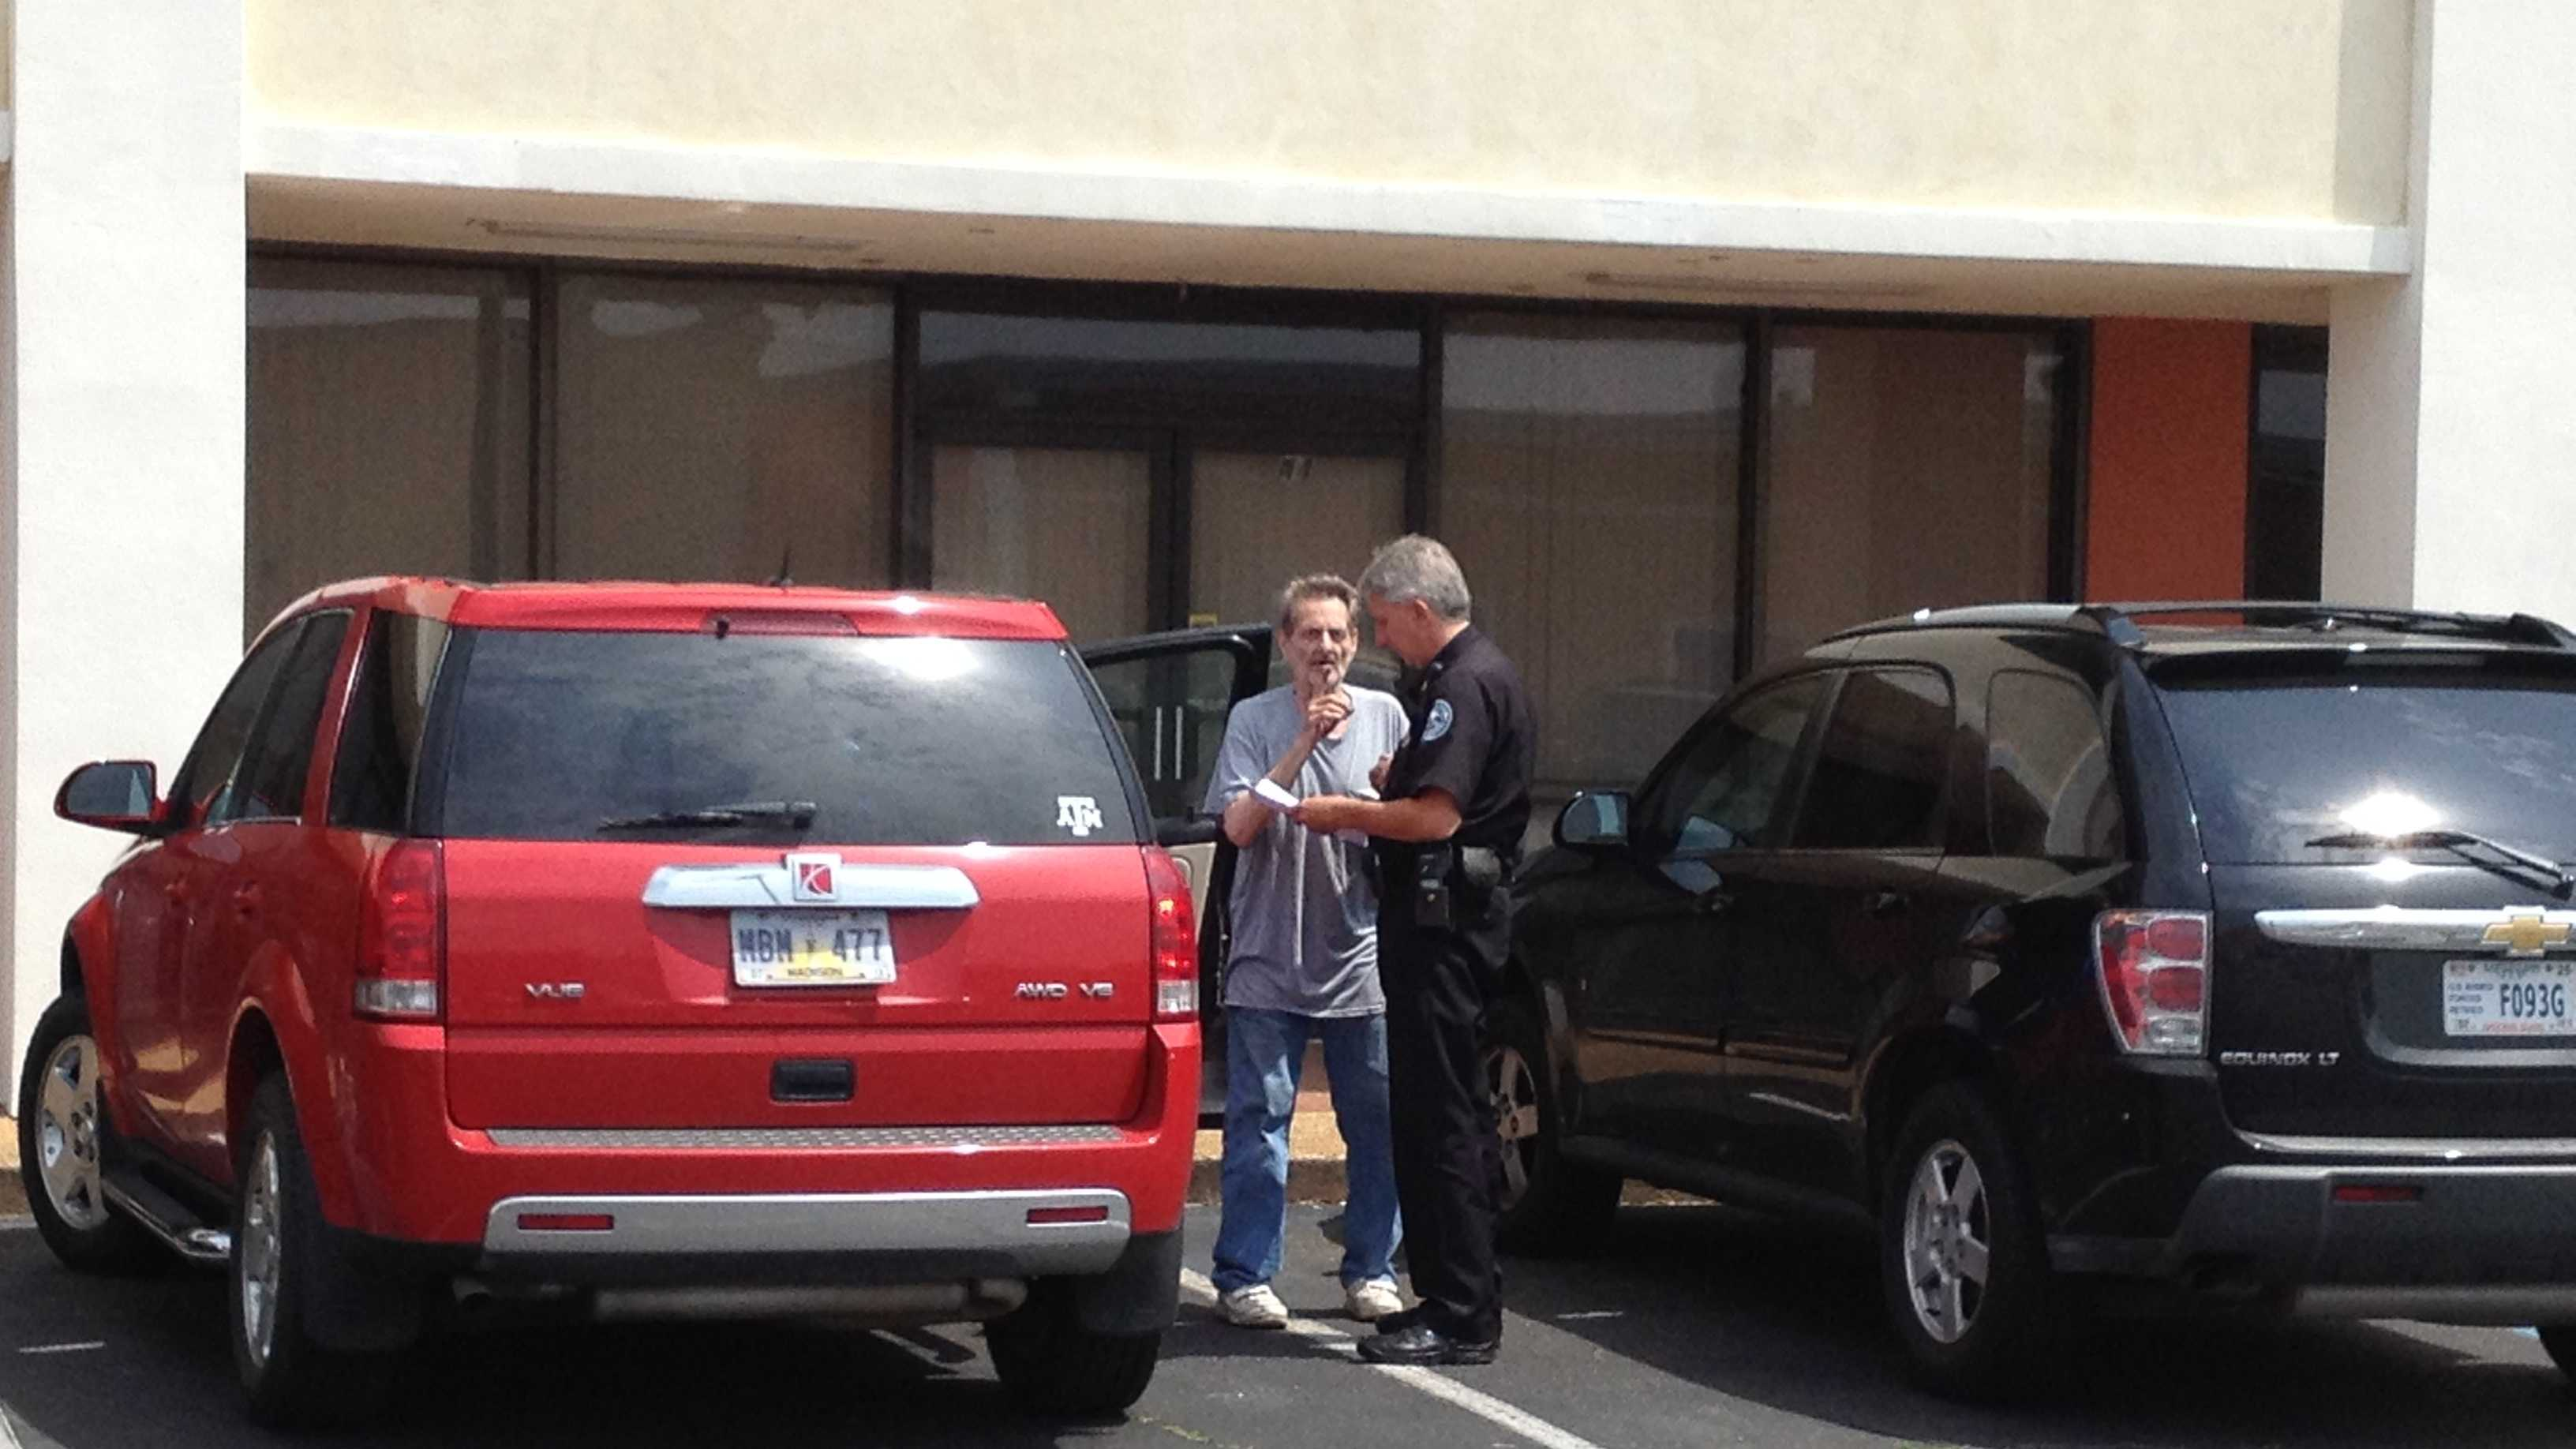 Paul White speaks to a Jackson police officer at Precinct 4.